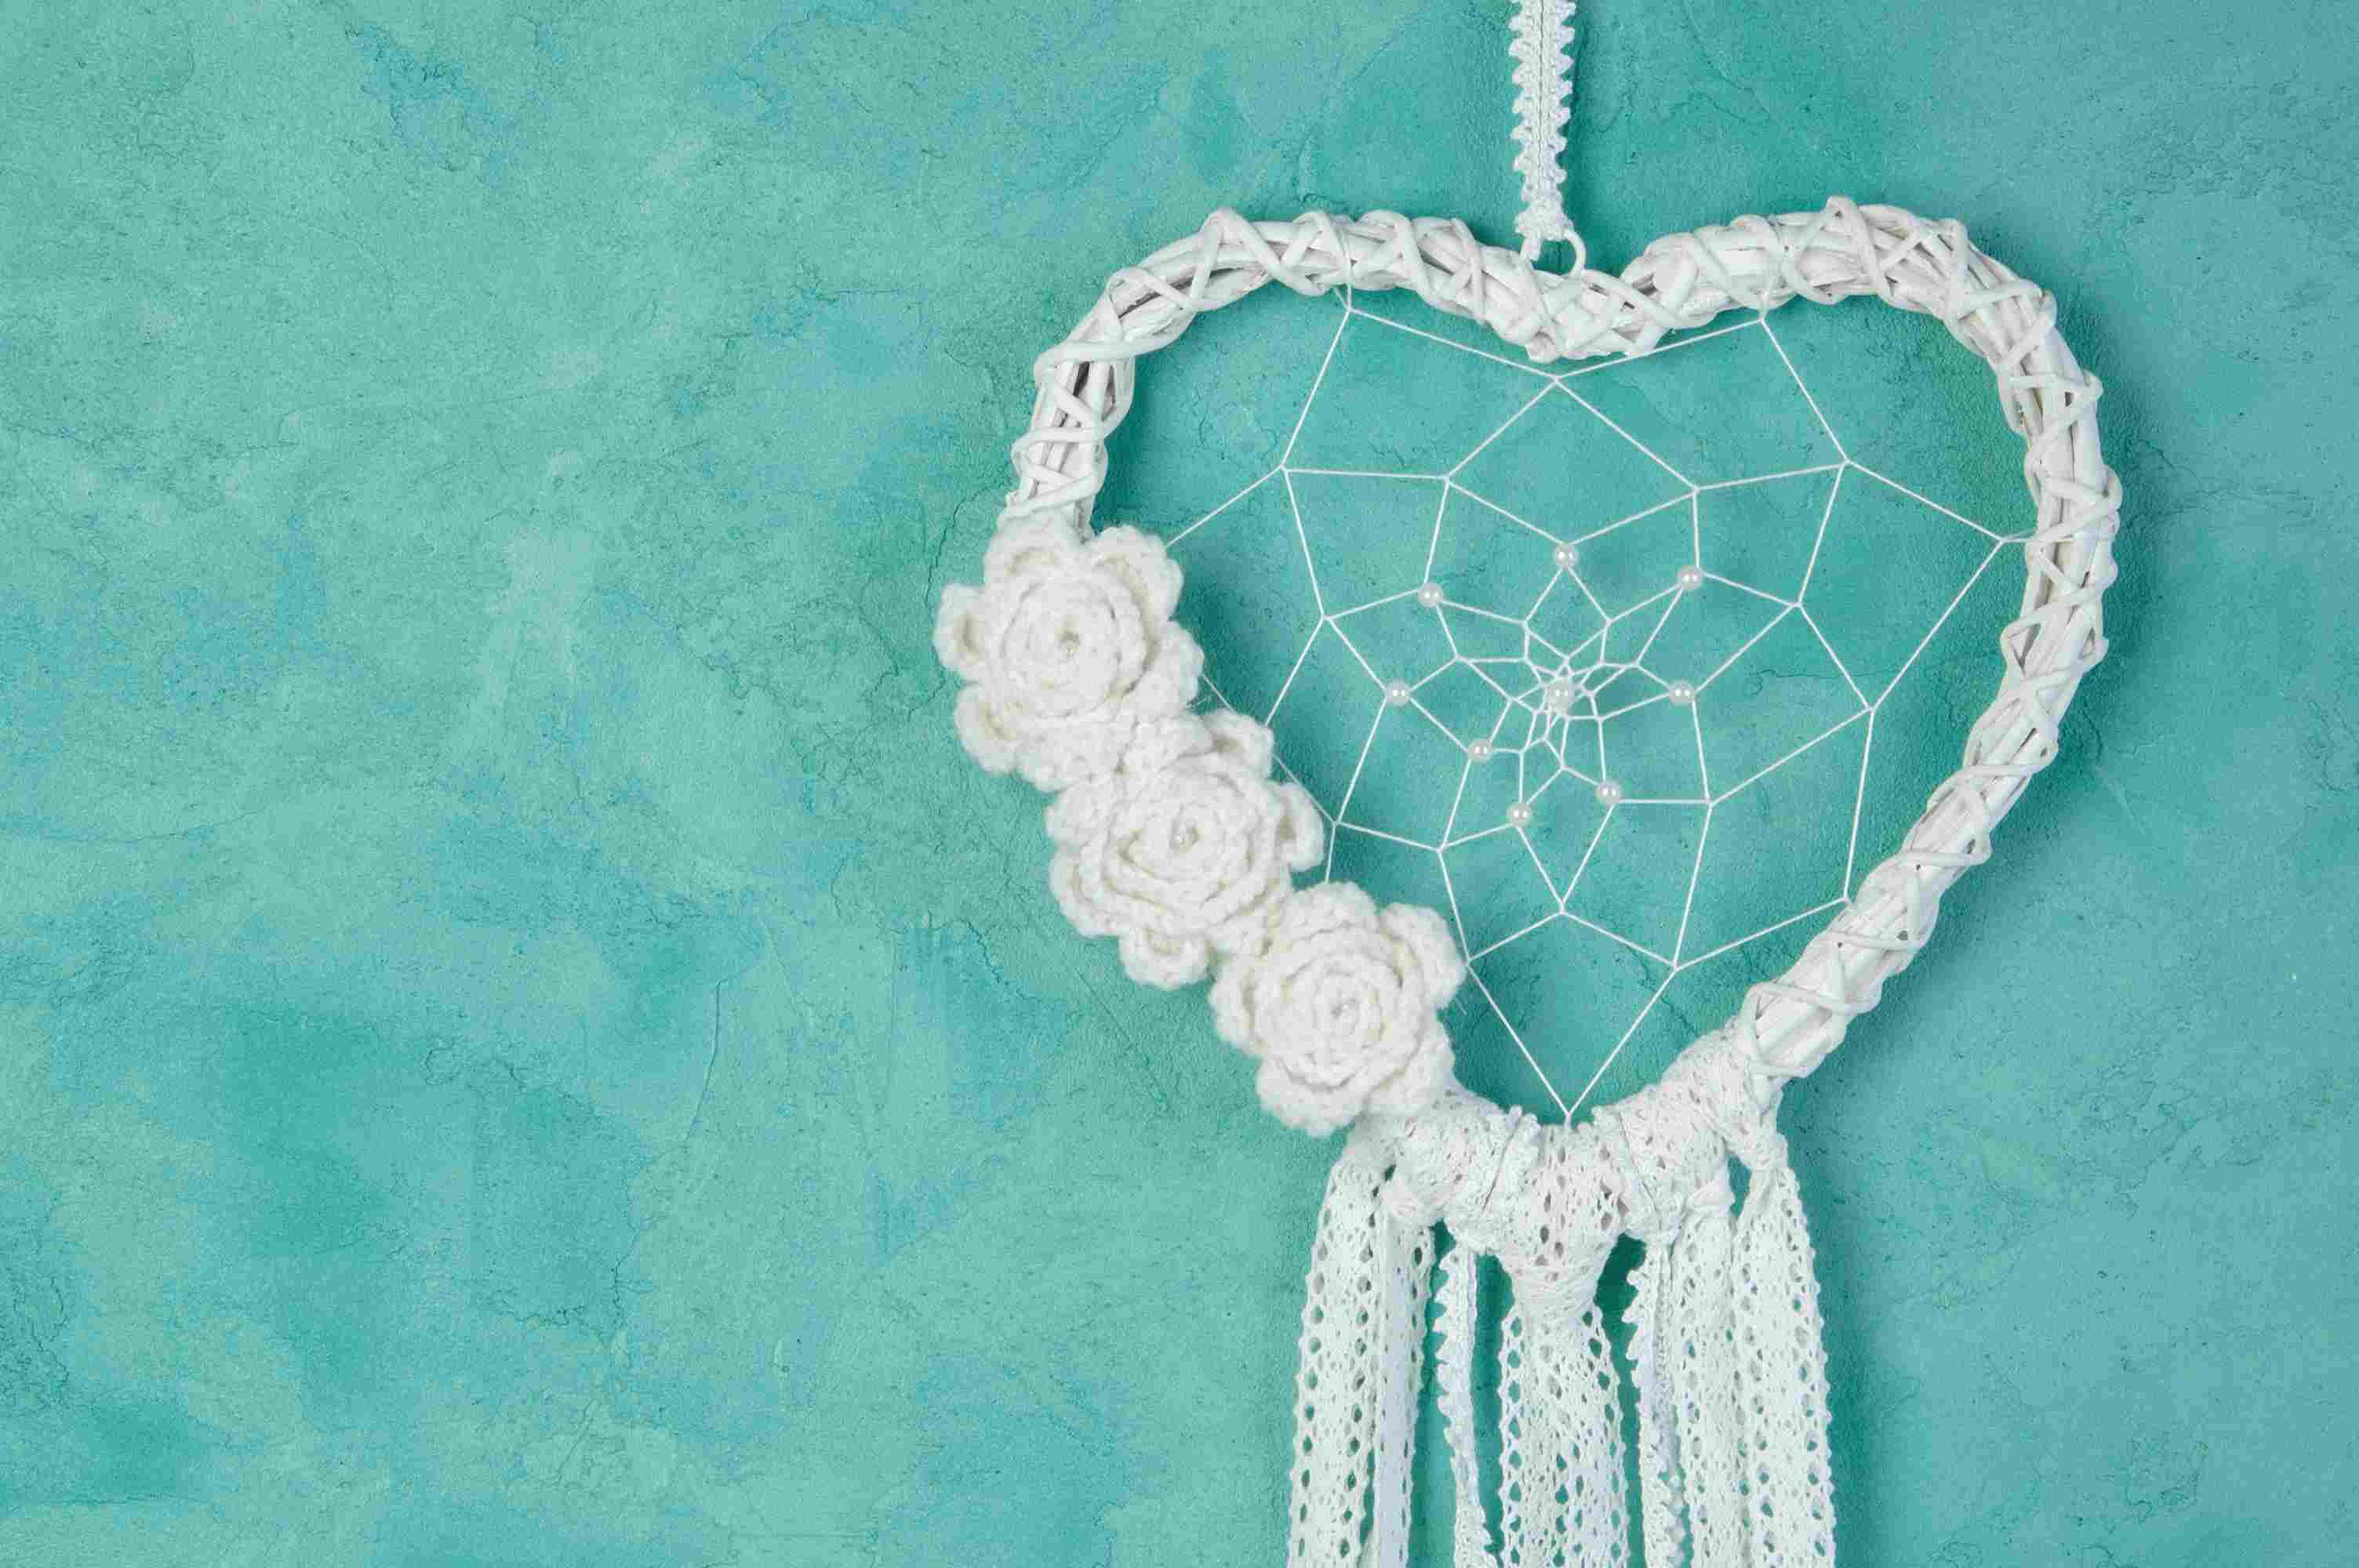 Crochet Heart Wreath with Roses